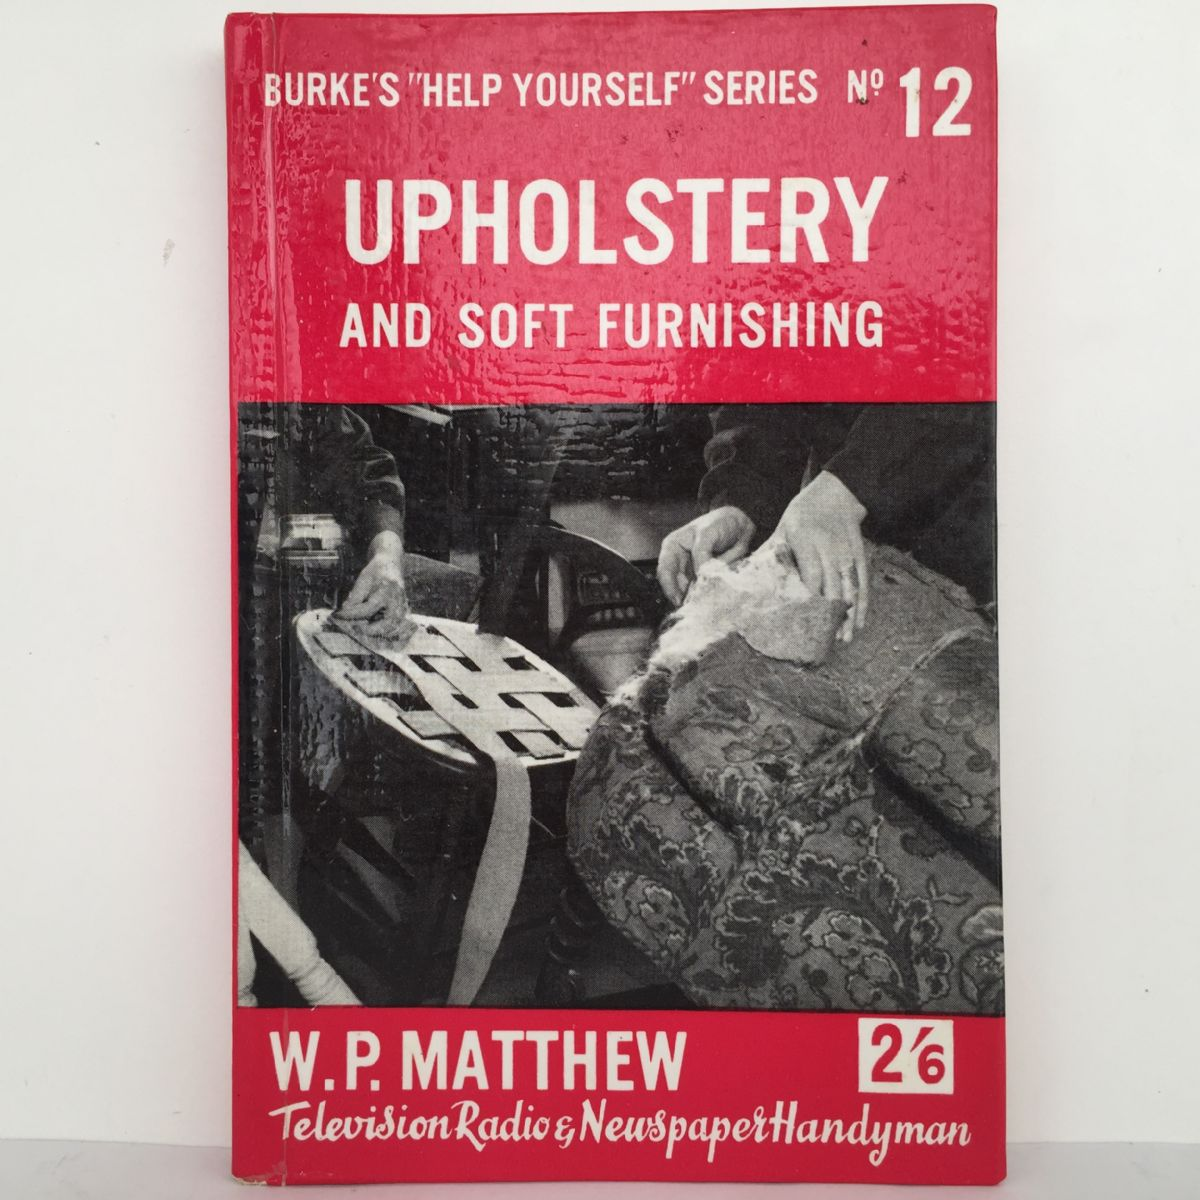 Upholstery and Soft Furnishings